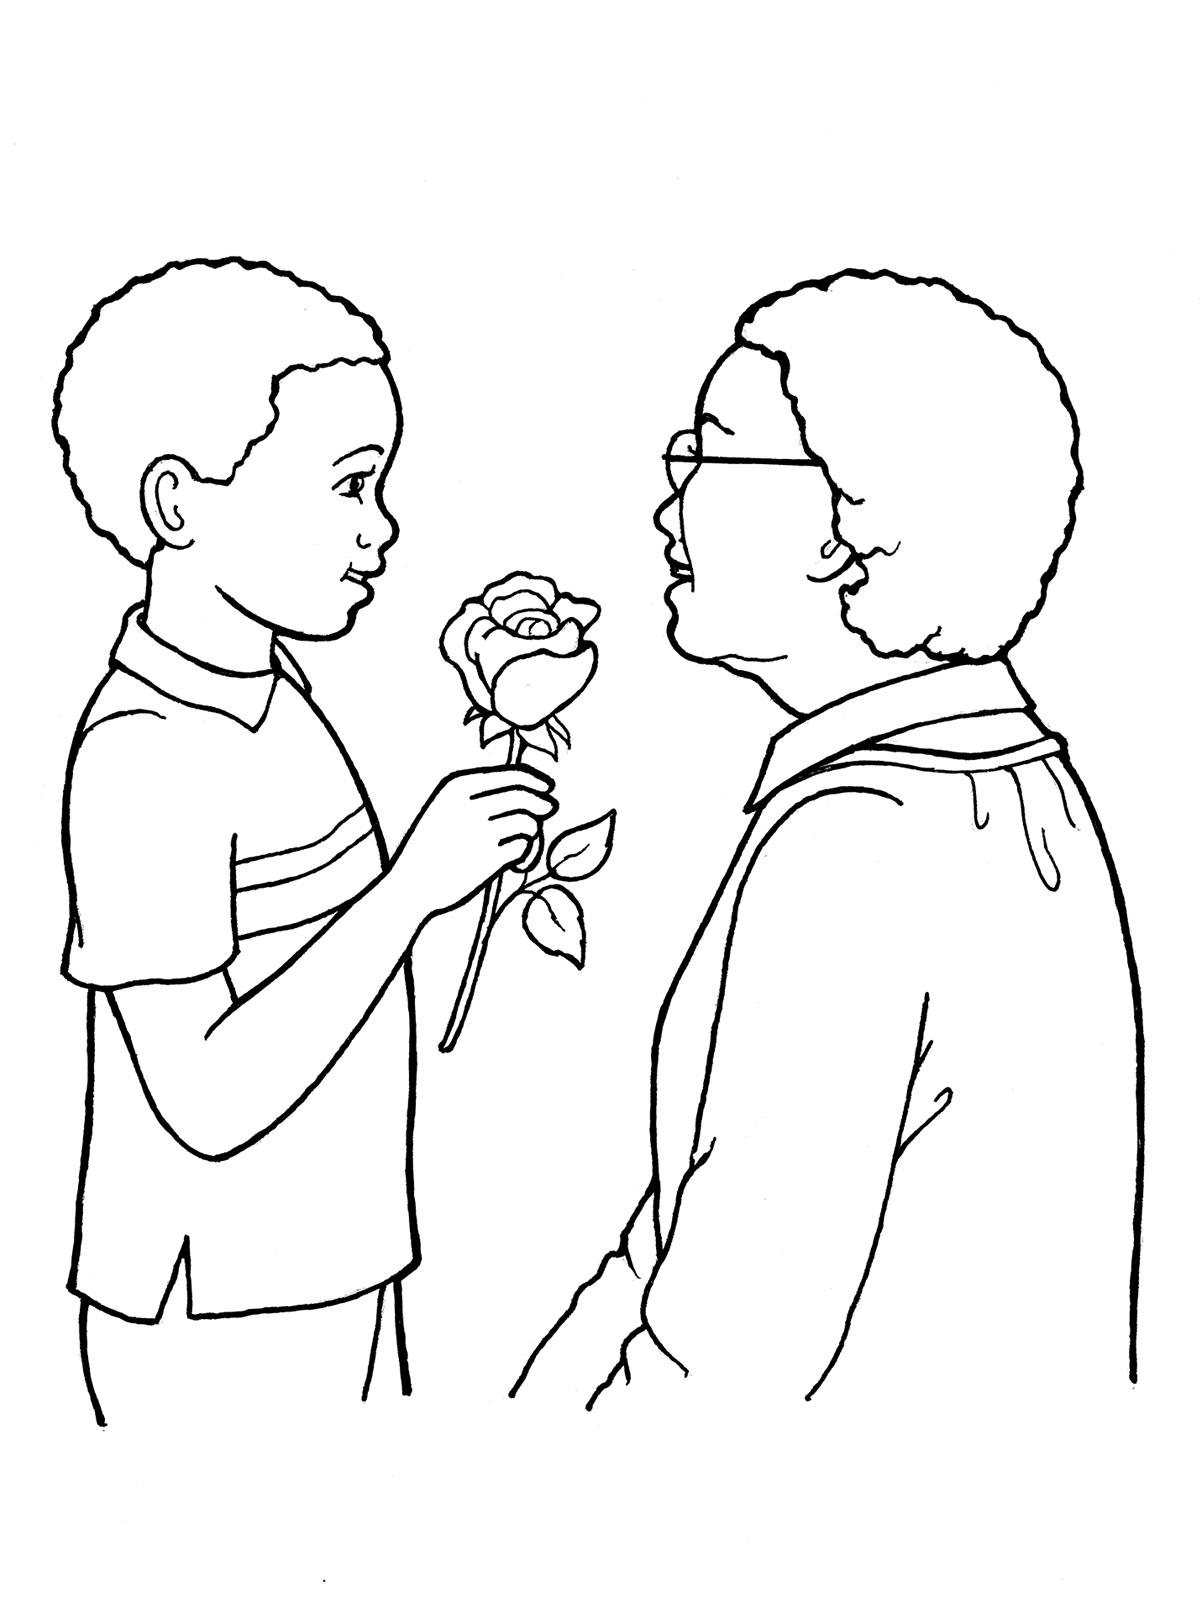 Holding A Rose Drawing At Getdrawings